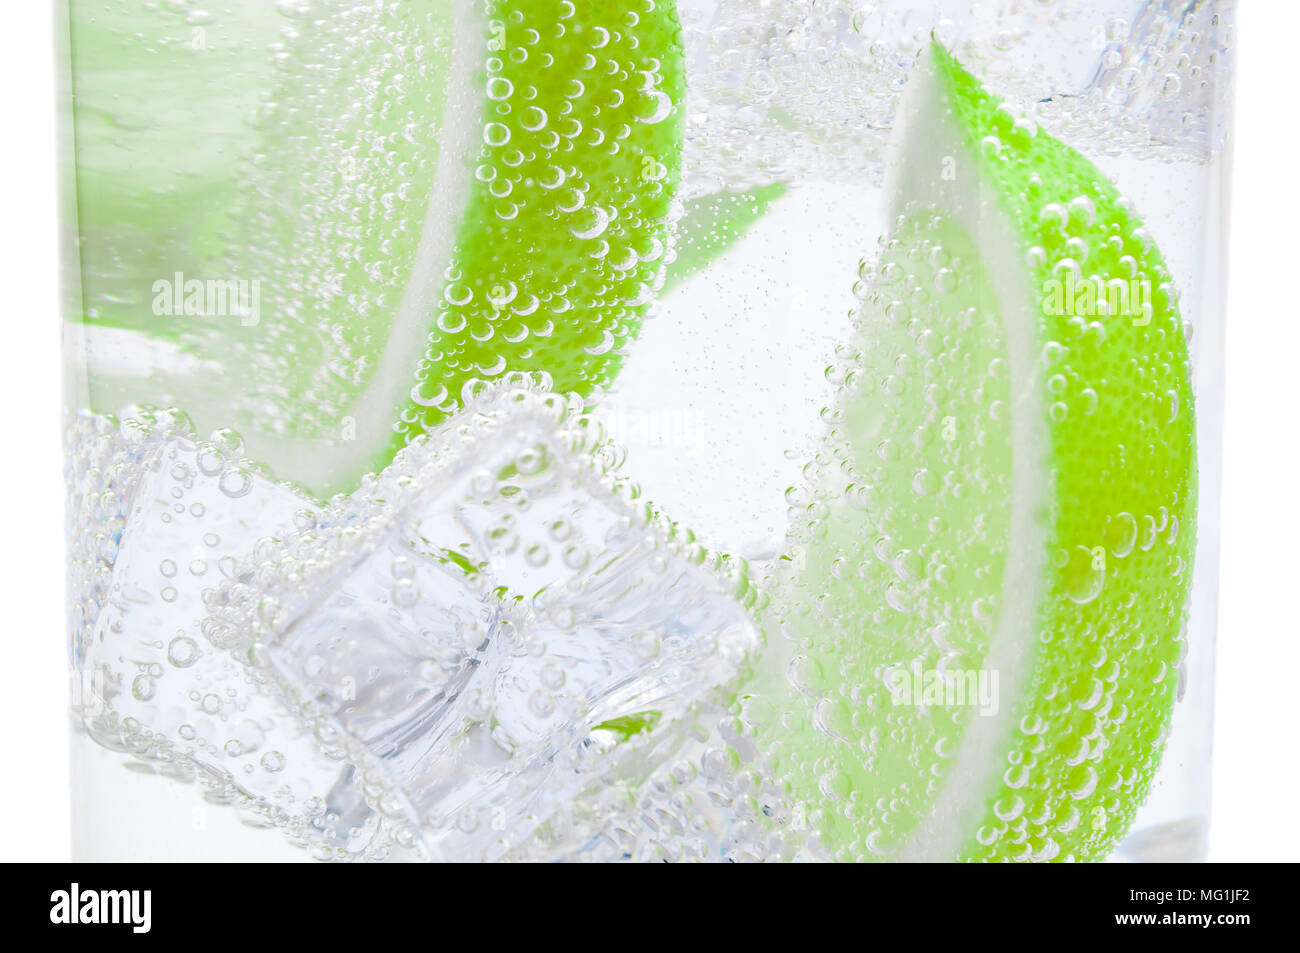 Pieces of fresh juicy lime sink into crystal clear water. - Stock Image